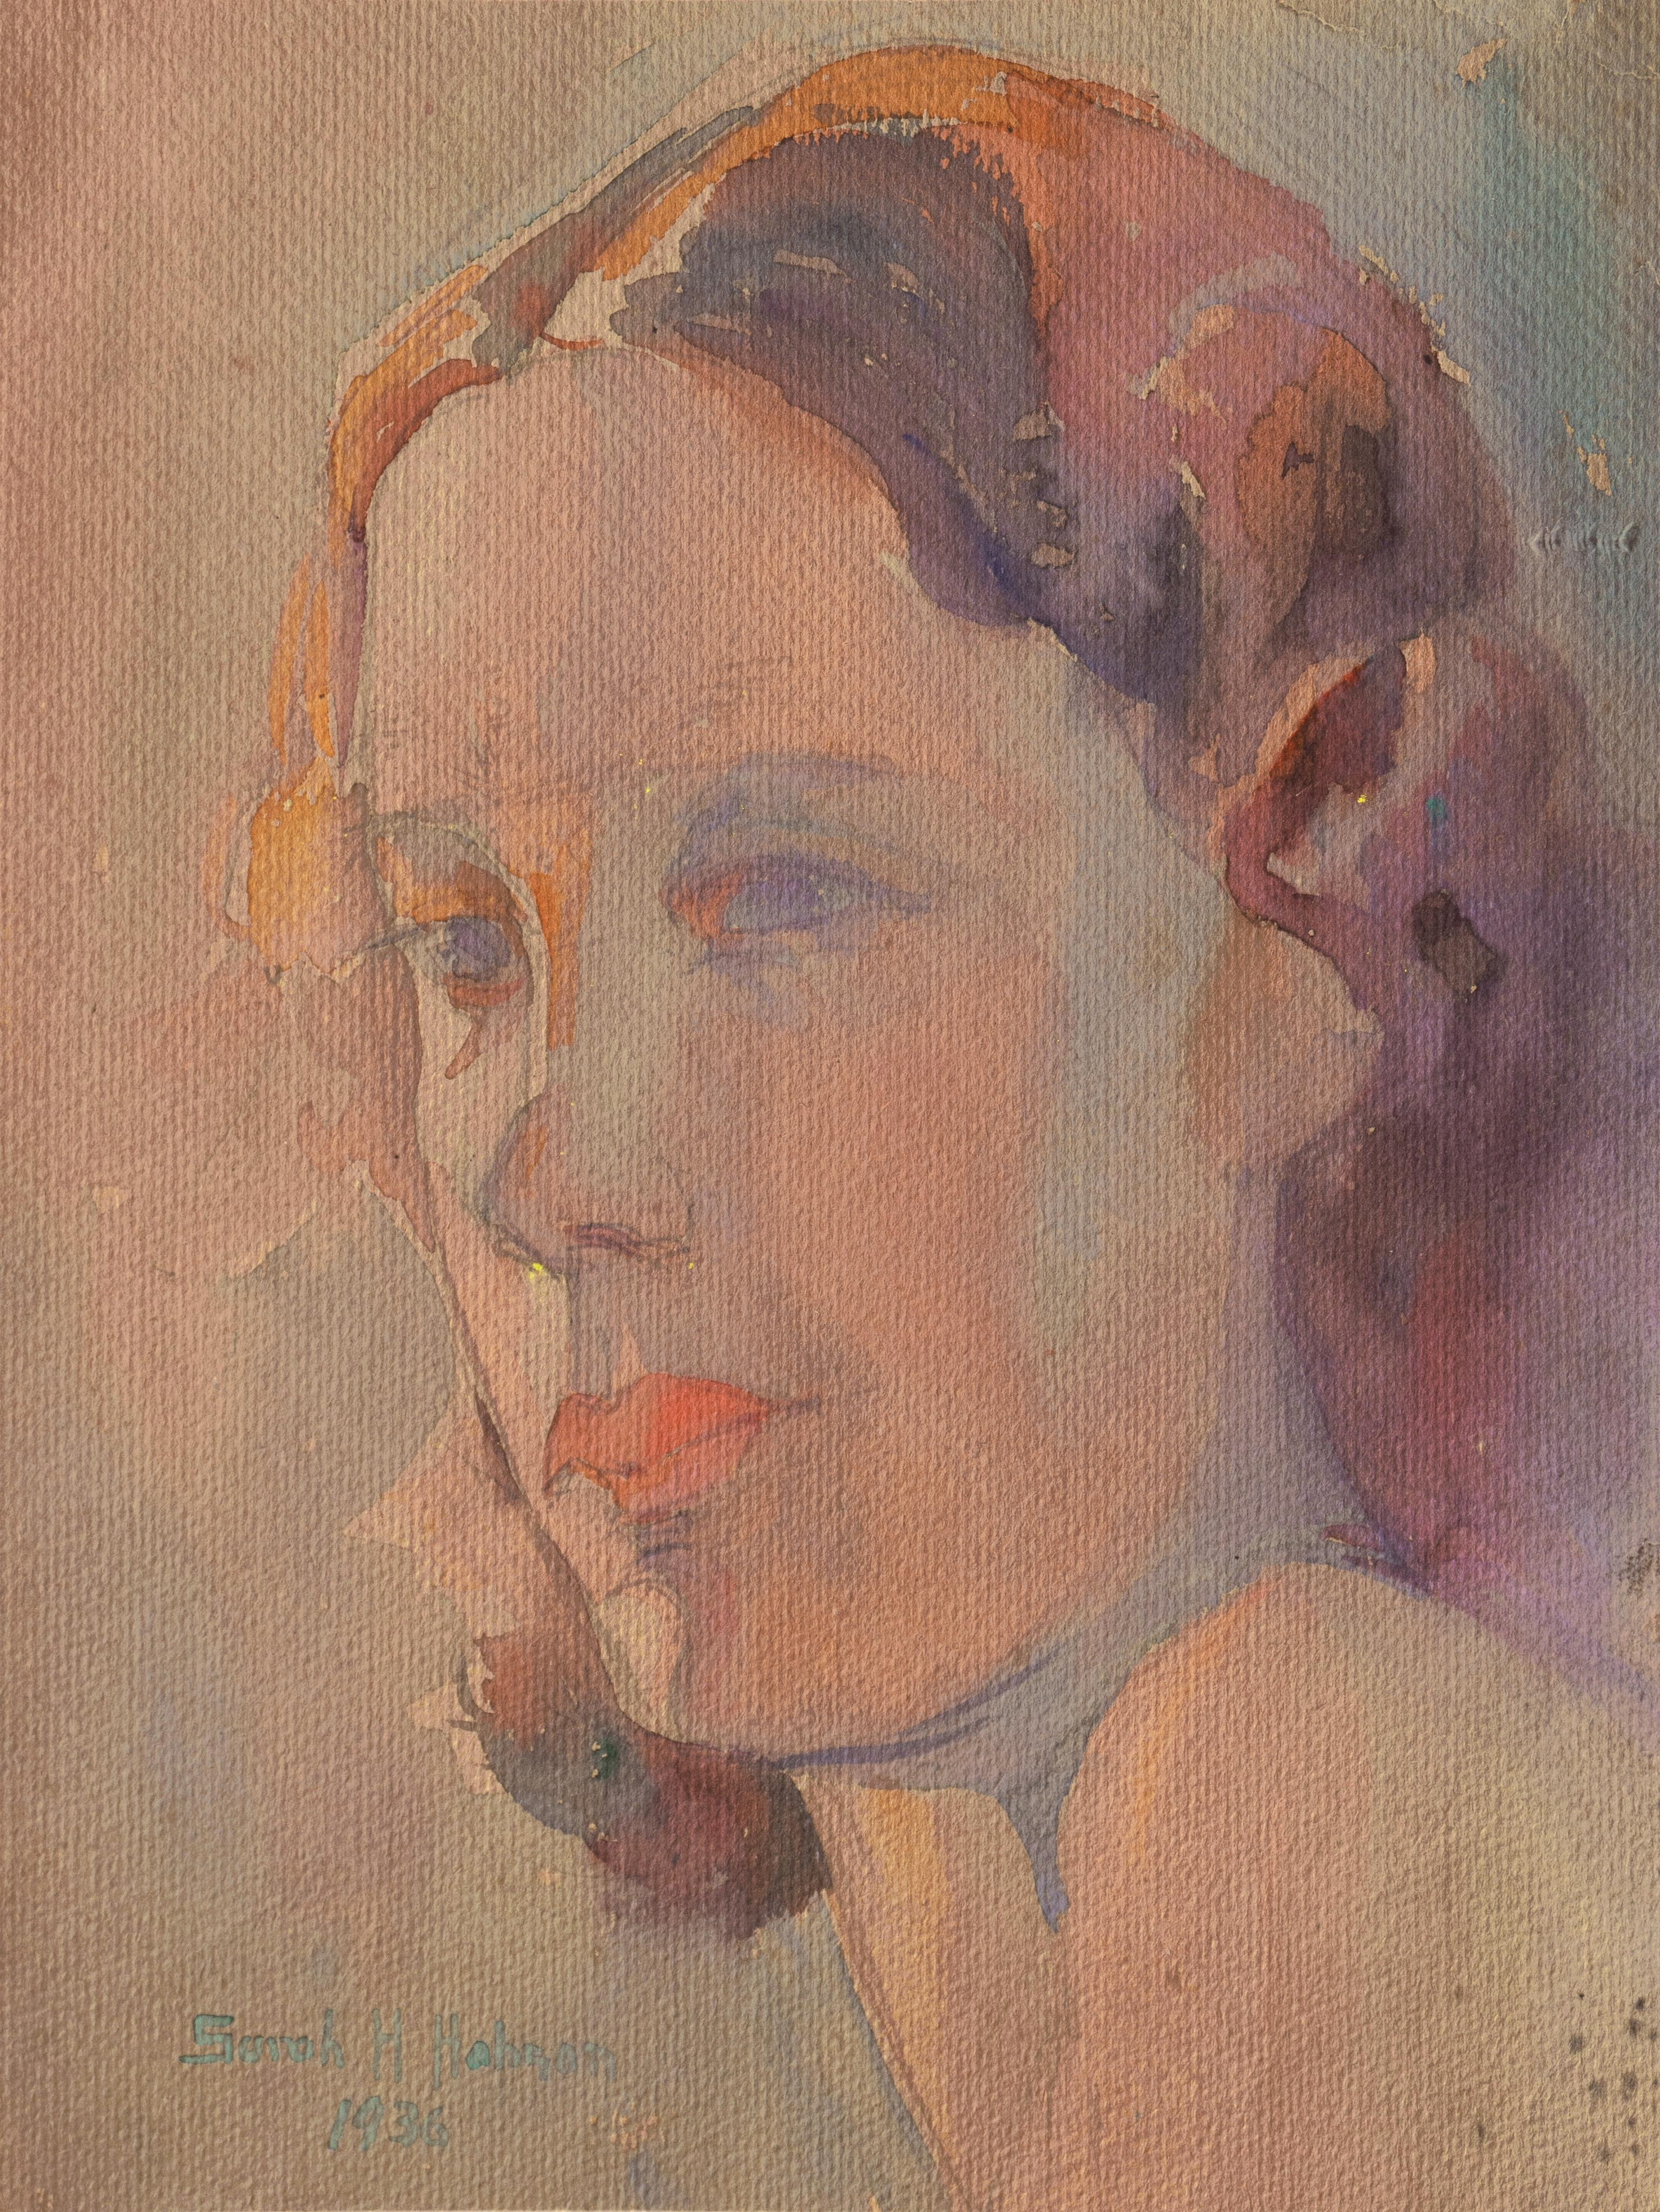 'Study of a Young Woman', California Woman artist, Art Institute of Chicago